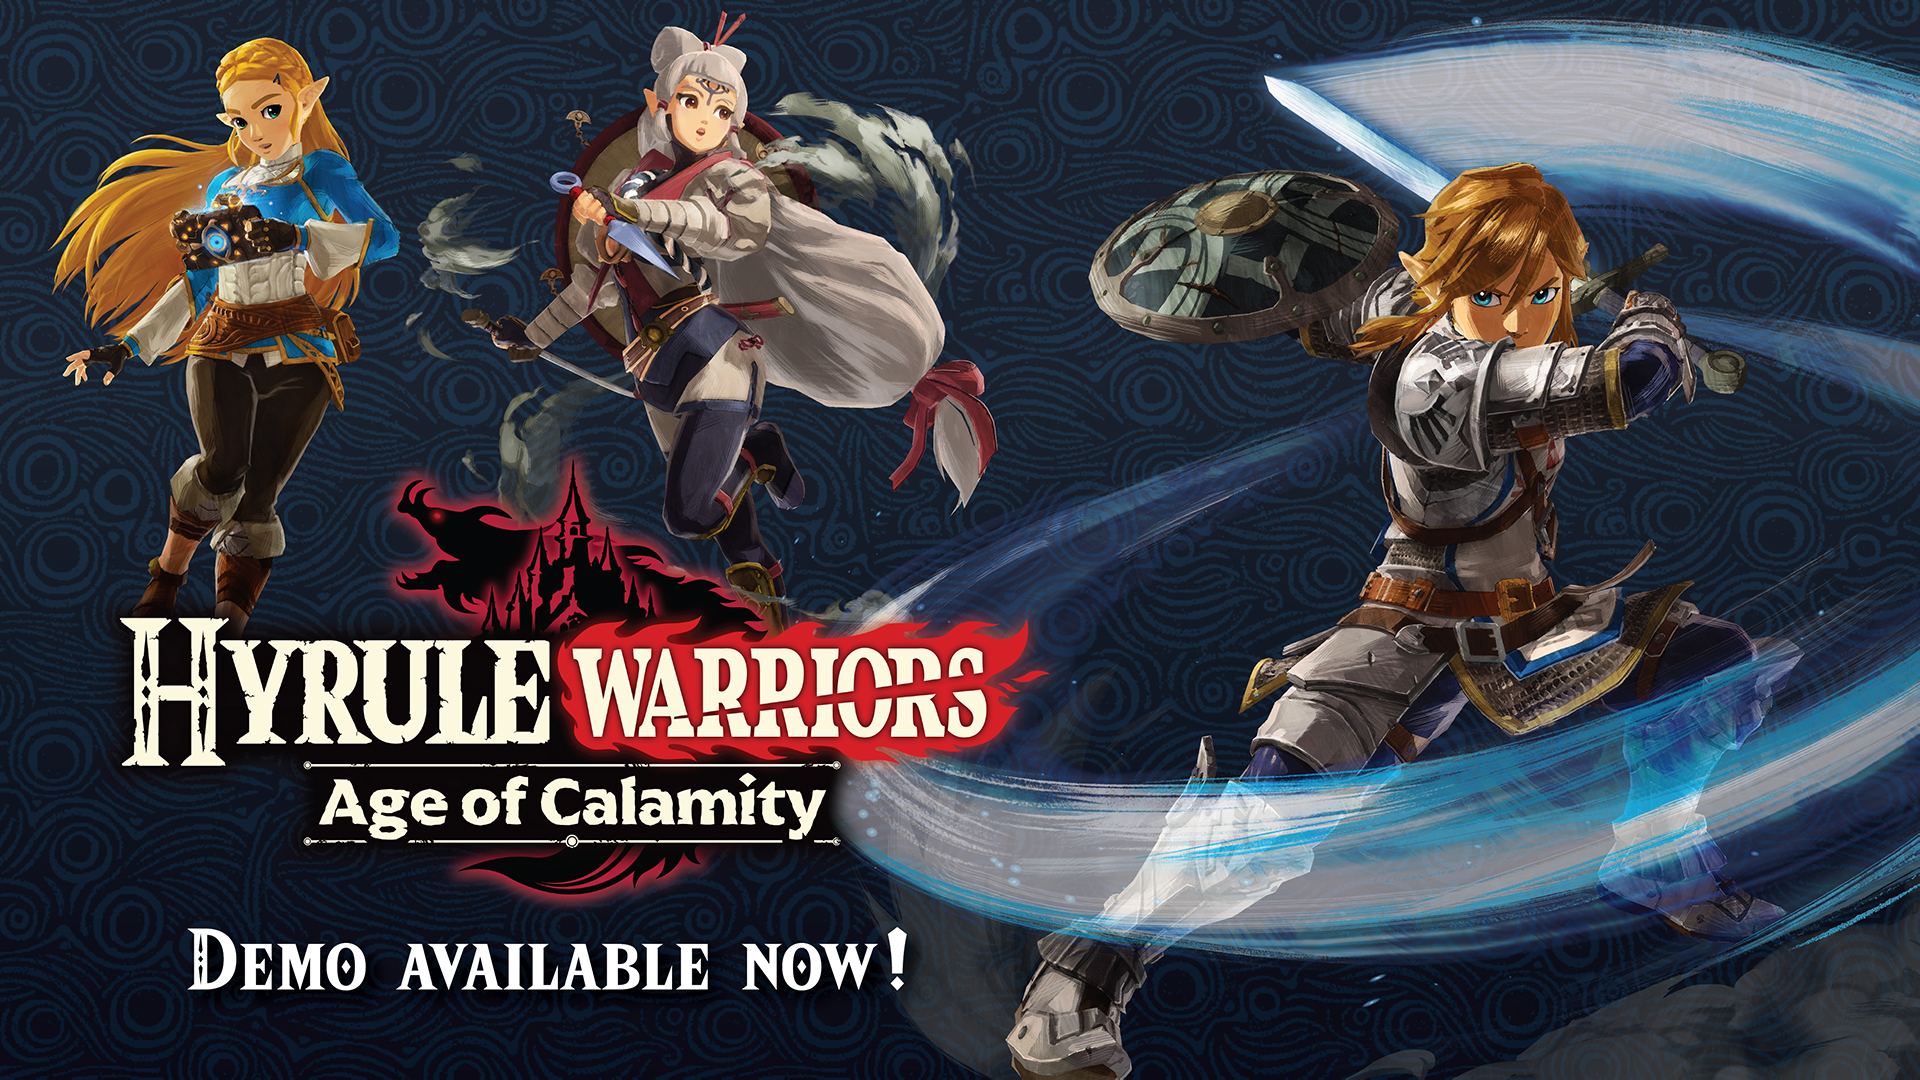 Nintendo Of America On Twitter Icymi A Demo Of Hyrulewarriors Age Of Calamity Is Available Now Play All Of Chapter 1 As Link Zelda And Impa And Even Carry Over Your Save Data To The Full Game When It Releases On 11 20 Zelda Https T Co